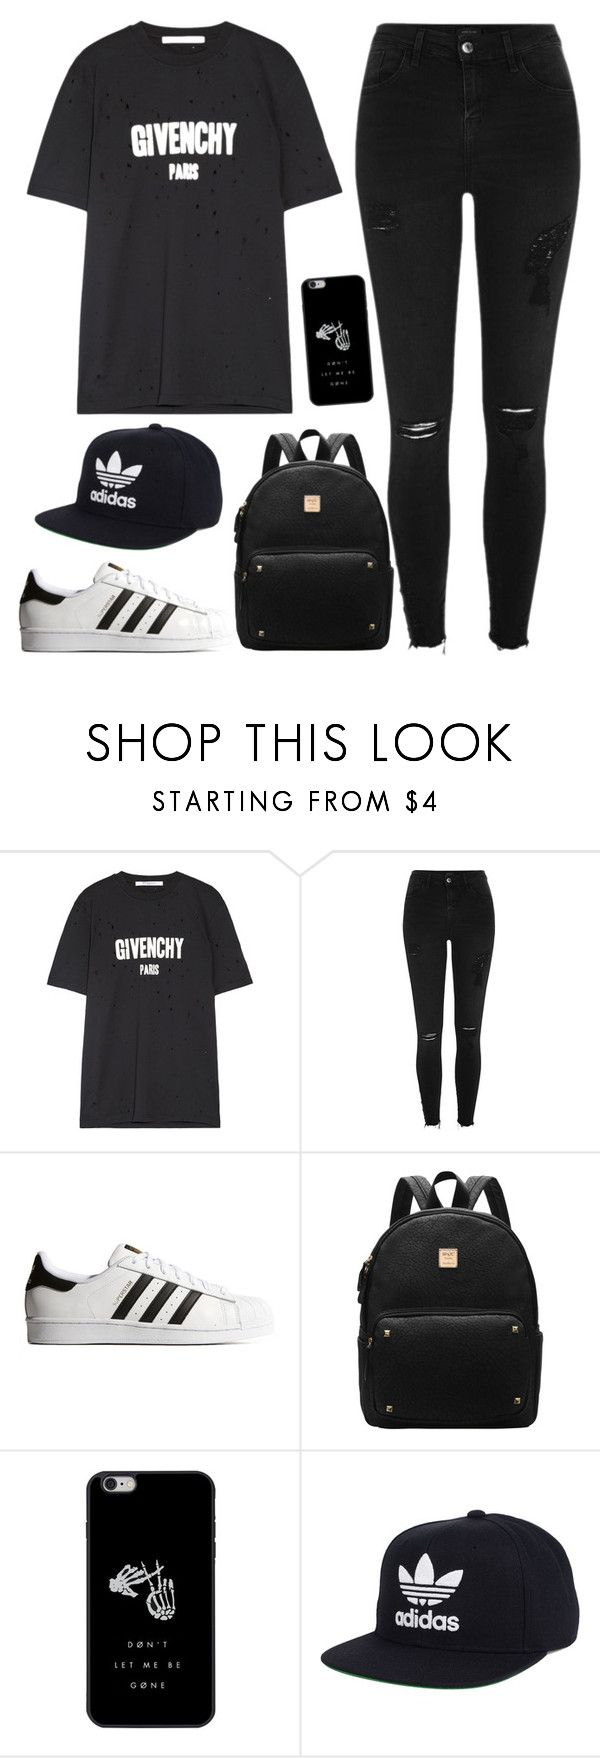 """Untitled #102"" by alexanutella on Polyvore featuring Givenchy, River Island, adidas Originals and adidas"